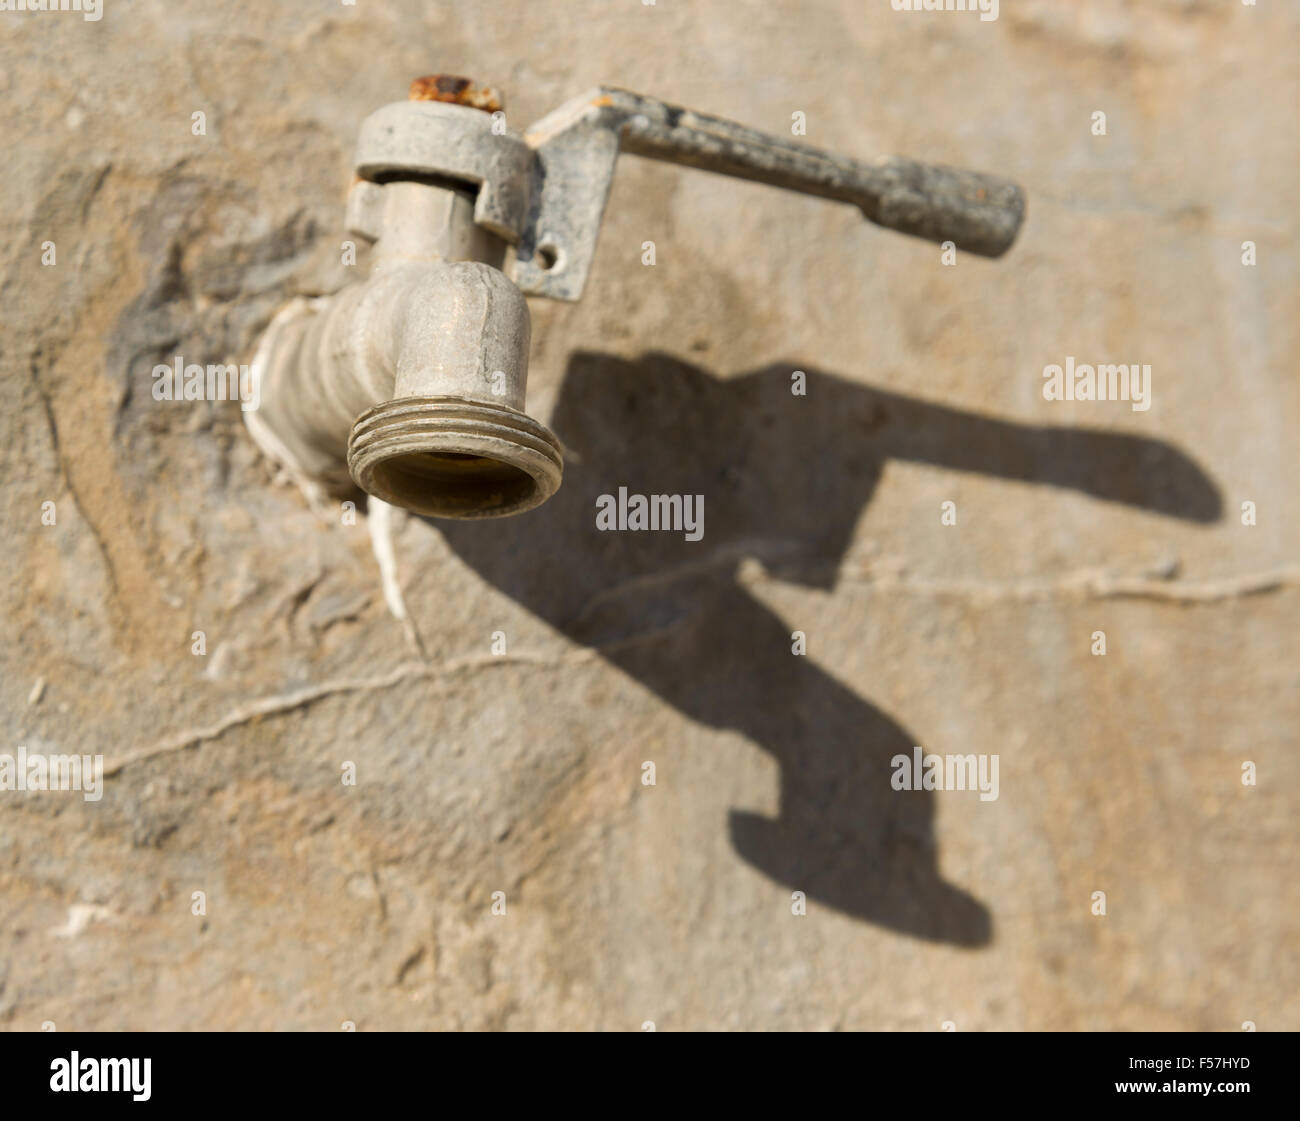 Lever ball valve tap. Tap handle, to shut off or open water flow ...